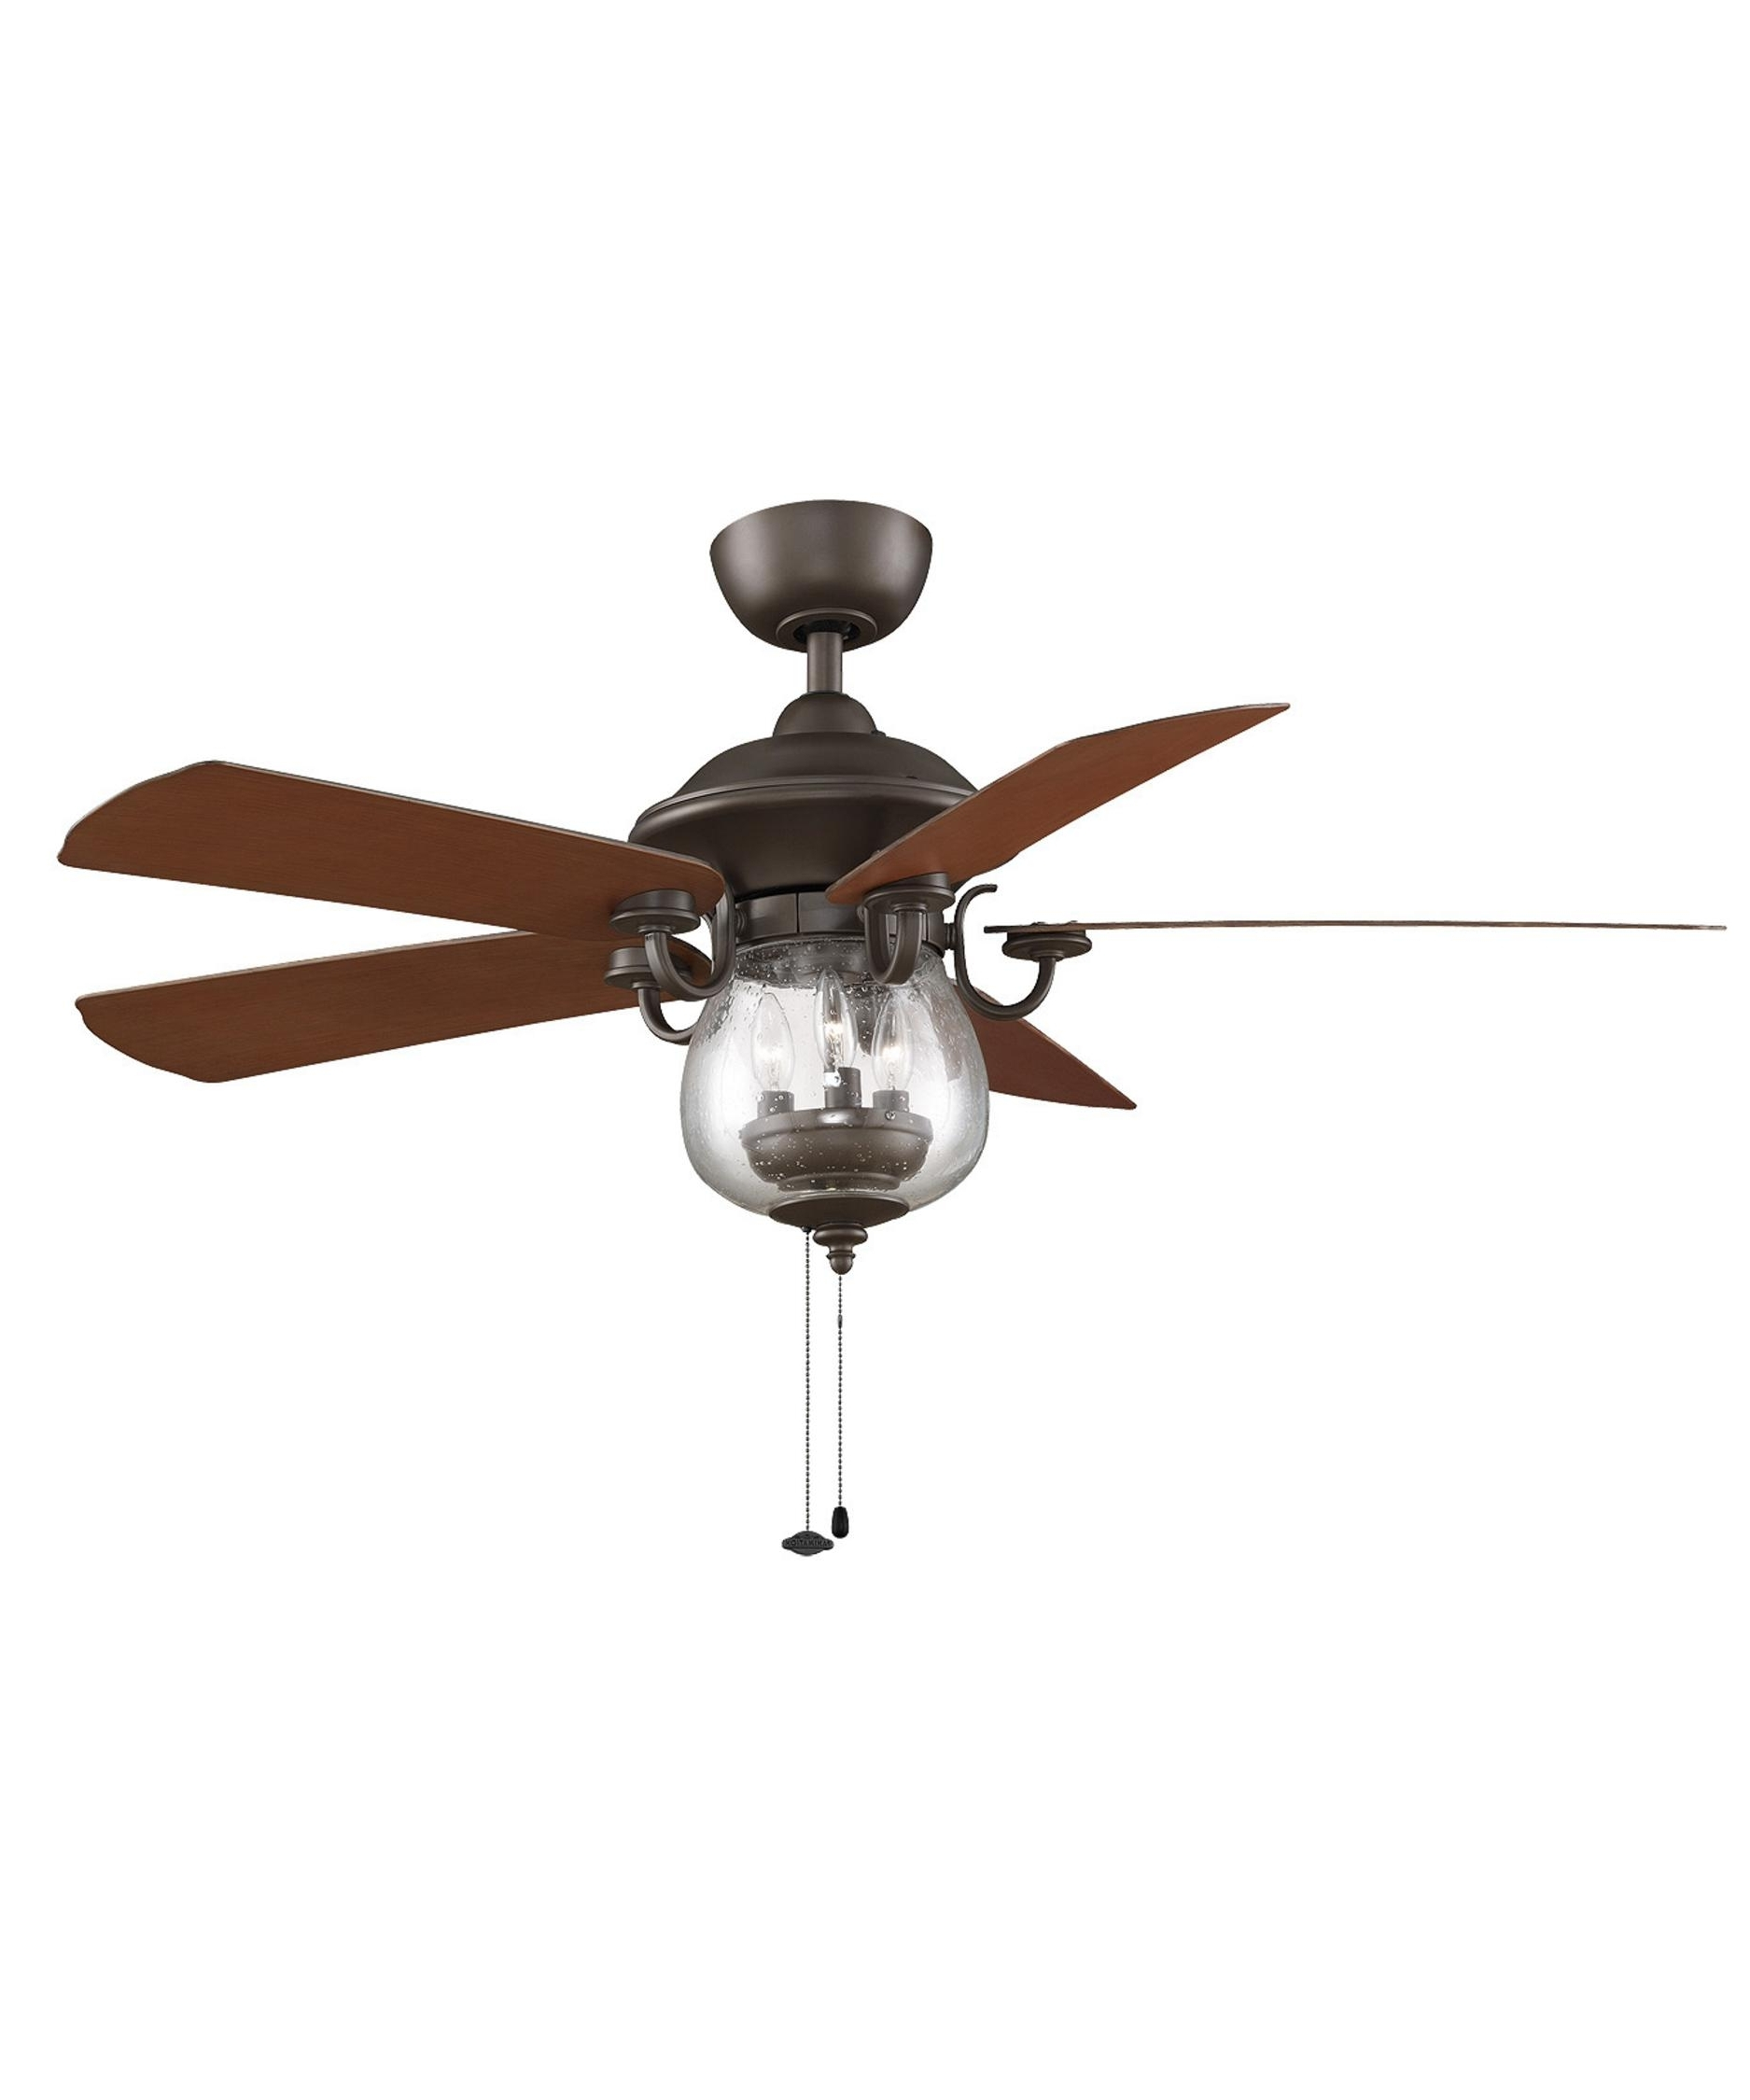 Hunter Outdoor Ceiling Fans With Lights Regarding Widely Used 52 Inch Outdoor Ceiling Fans With Lights (View 12 of 20)